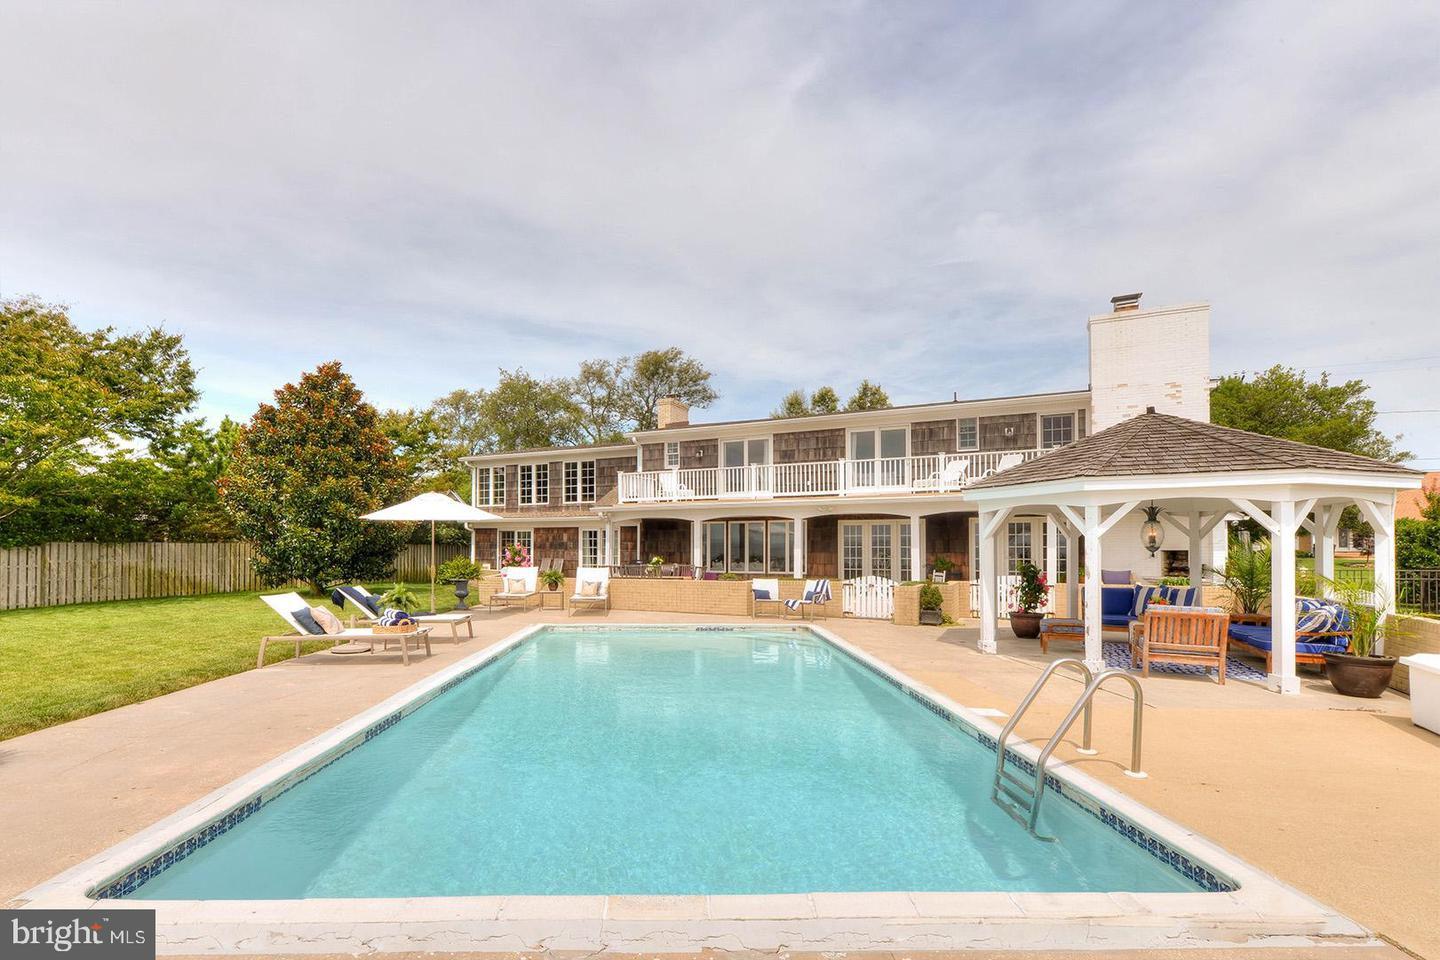 DESU146280-301986127986-2019-10-25-13-18-17 316 Salisbury St | Rehoboth Beach, DE Real Estate For Sale | MLS# Desu146280  - Rehoboth Beach Real Estate - Bryce Lingo and Shaun Tull REALTORS, Rehoboth Beach, Delaware